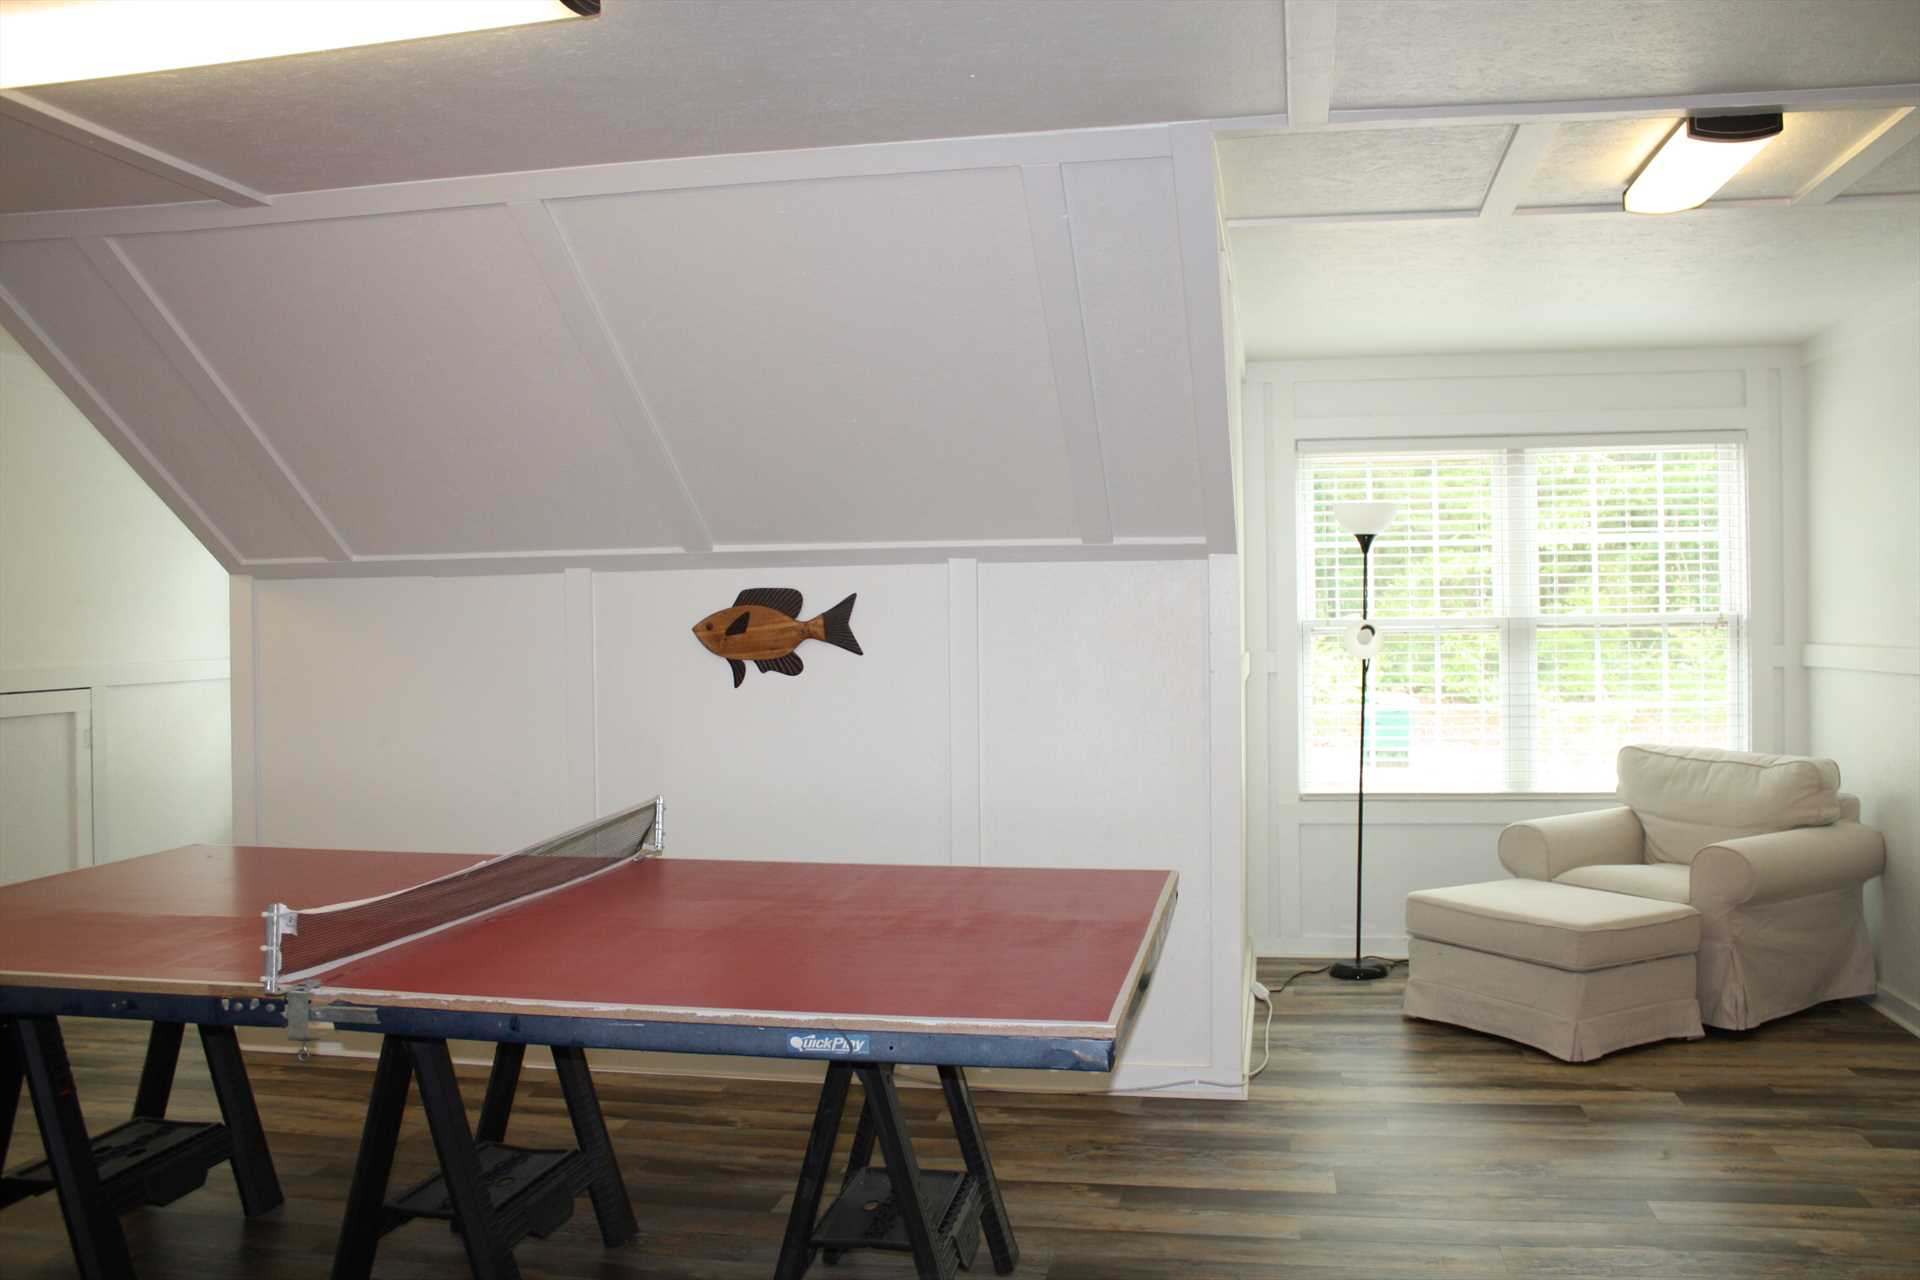 Upstairs ping pong table